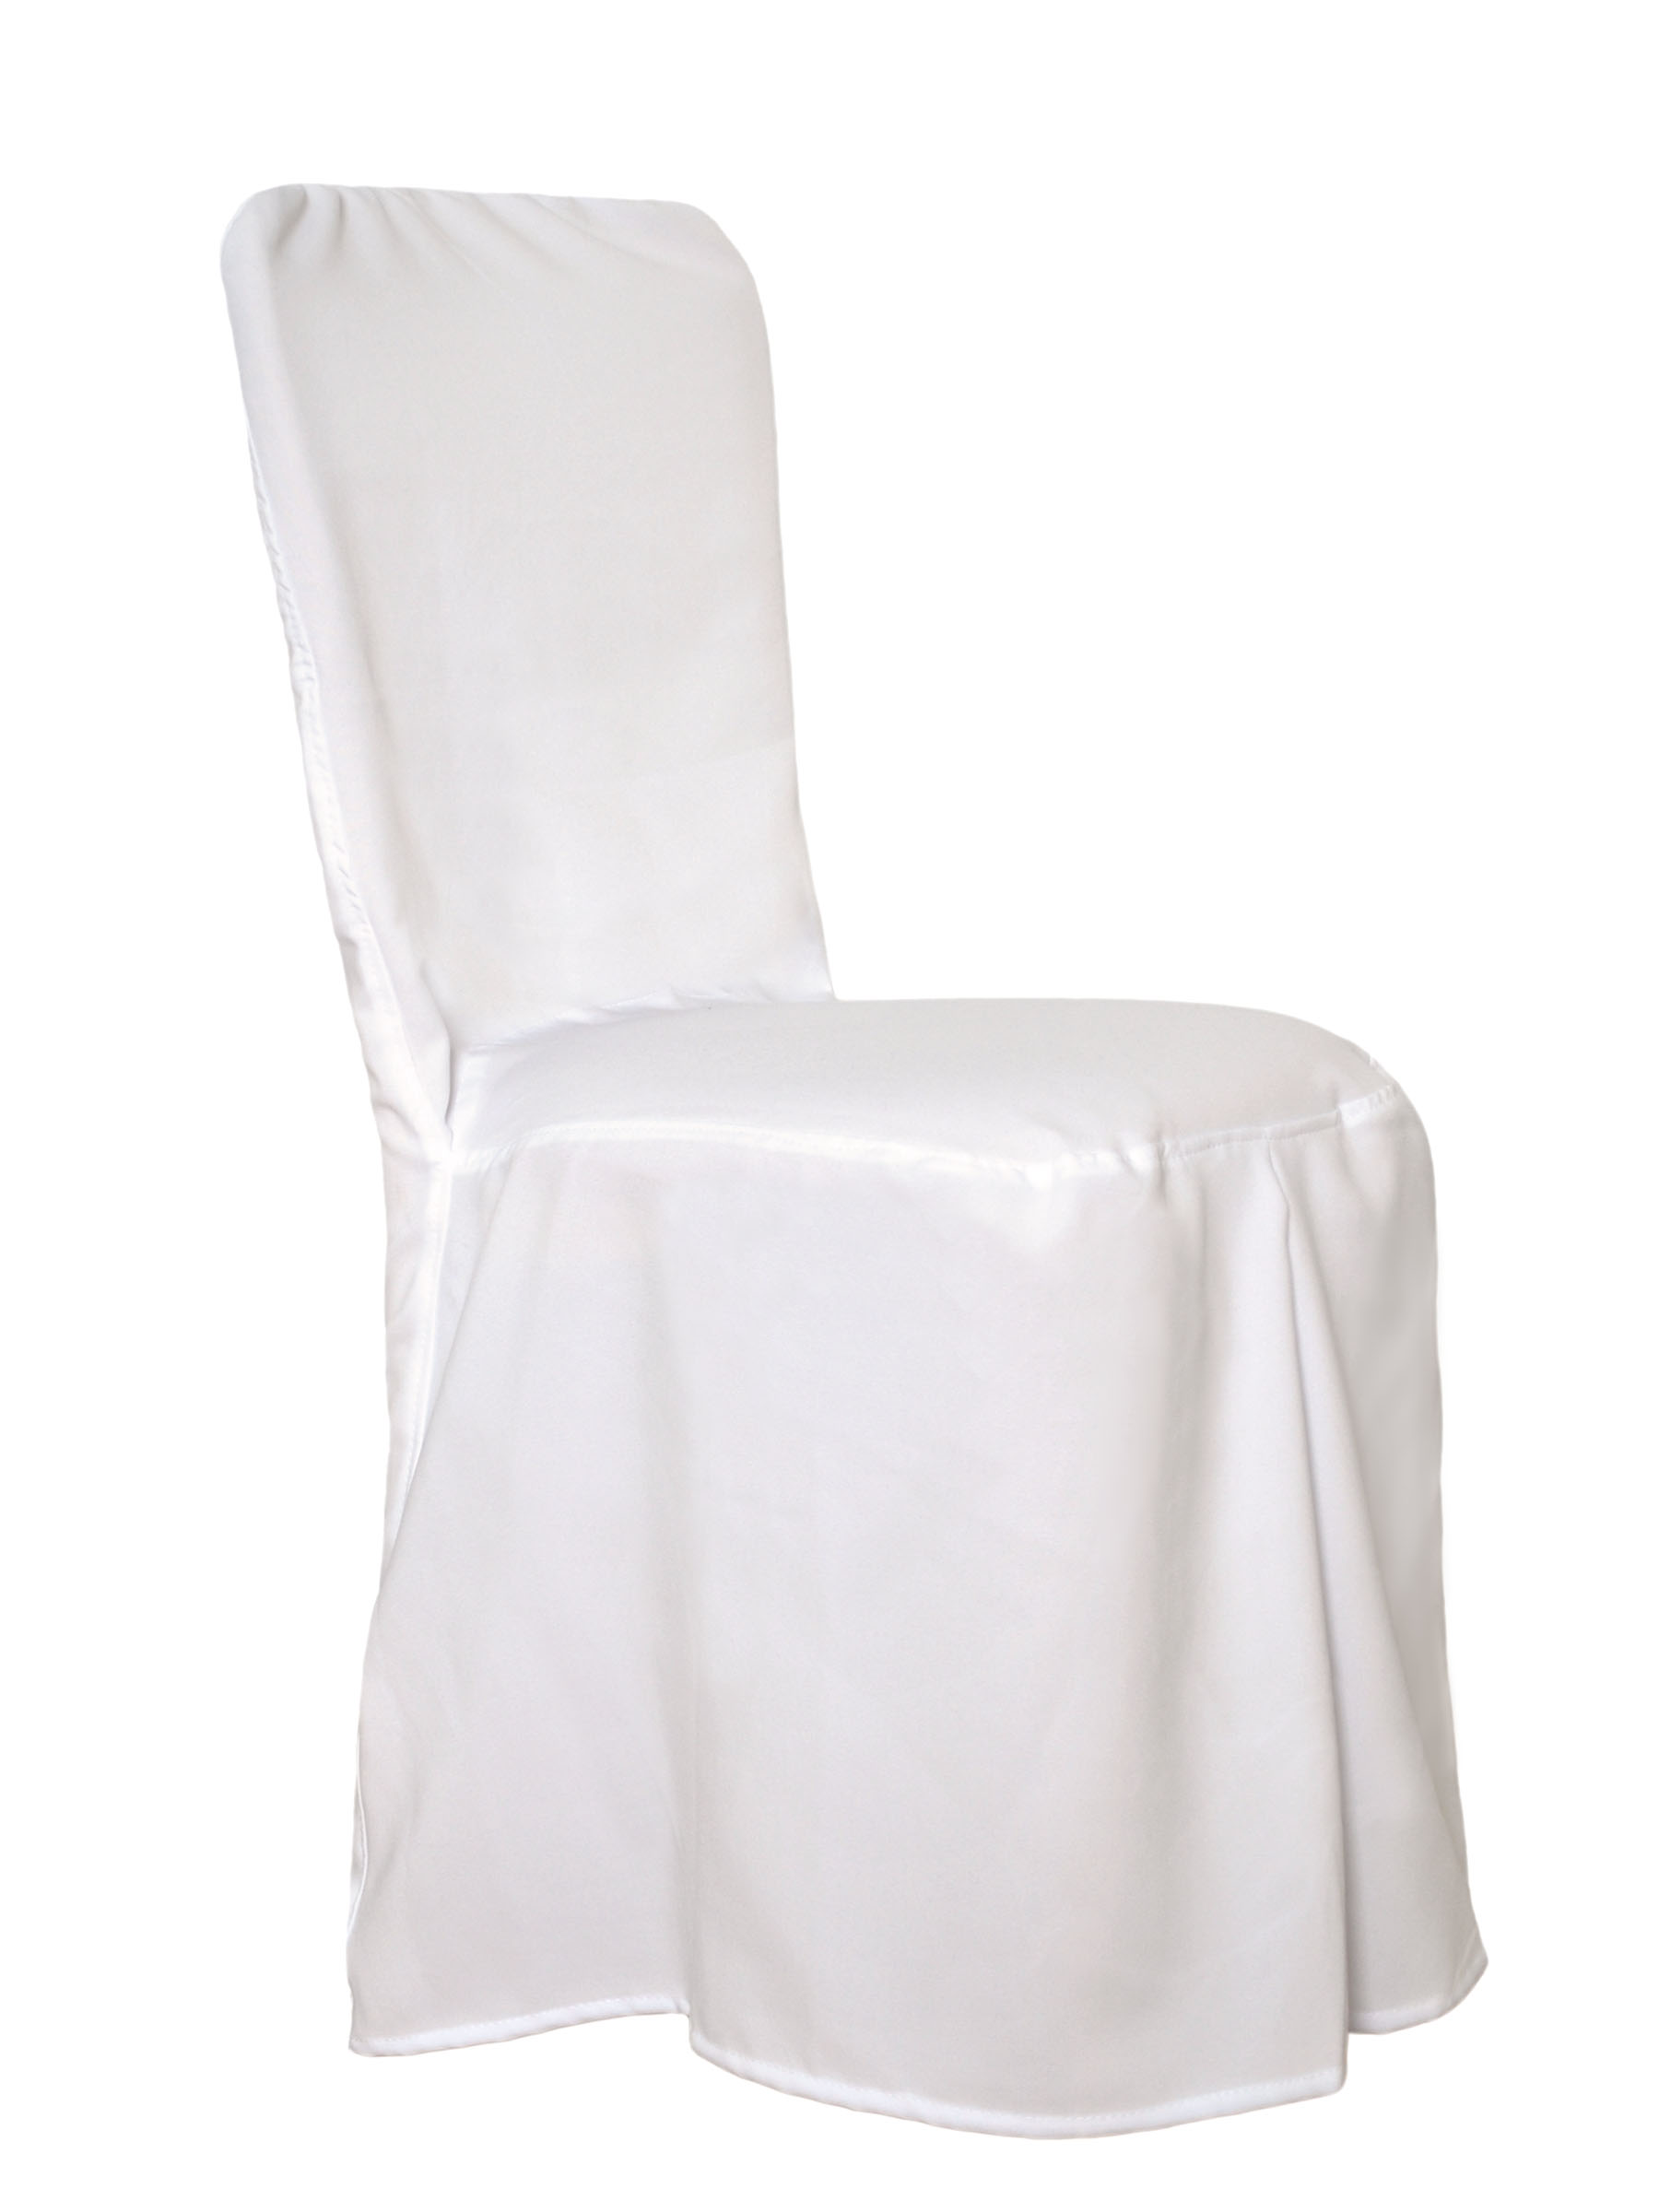 chair cover & sashes | altan events